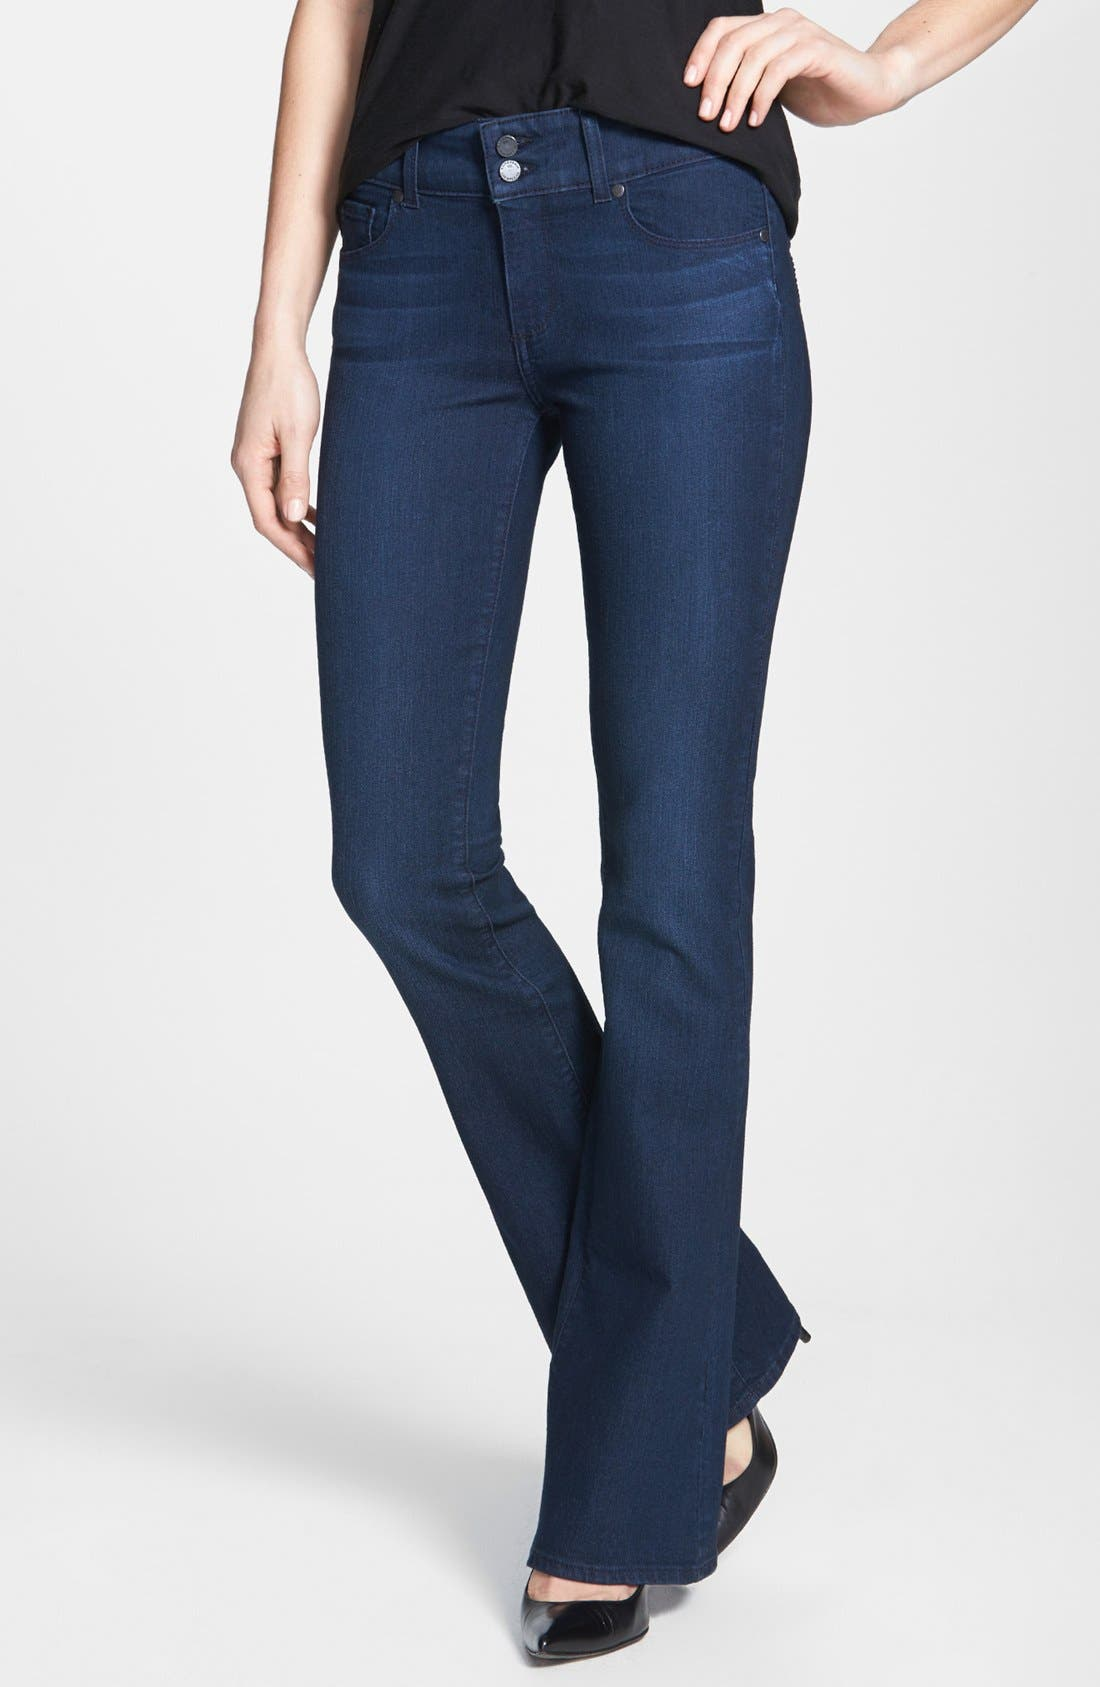 Alternate Image 1 Selected - Paige Denim 'Hidden Hills' Bootcut Jeans (Alexis)